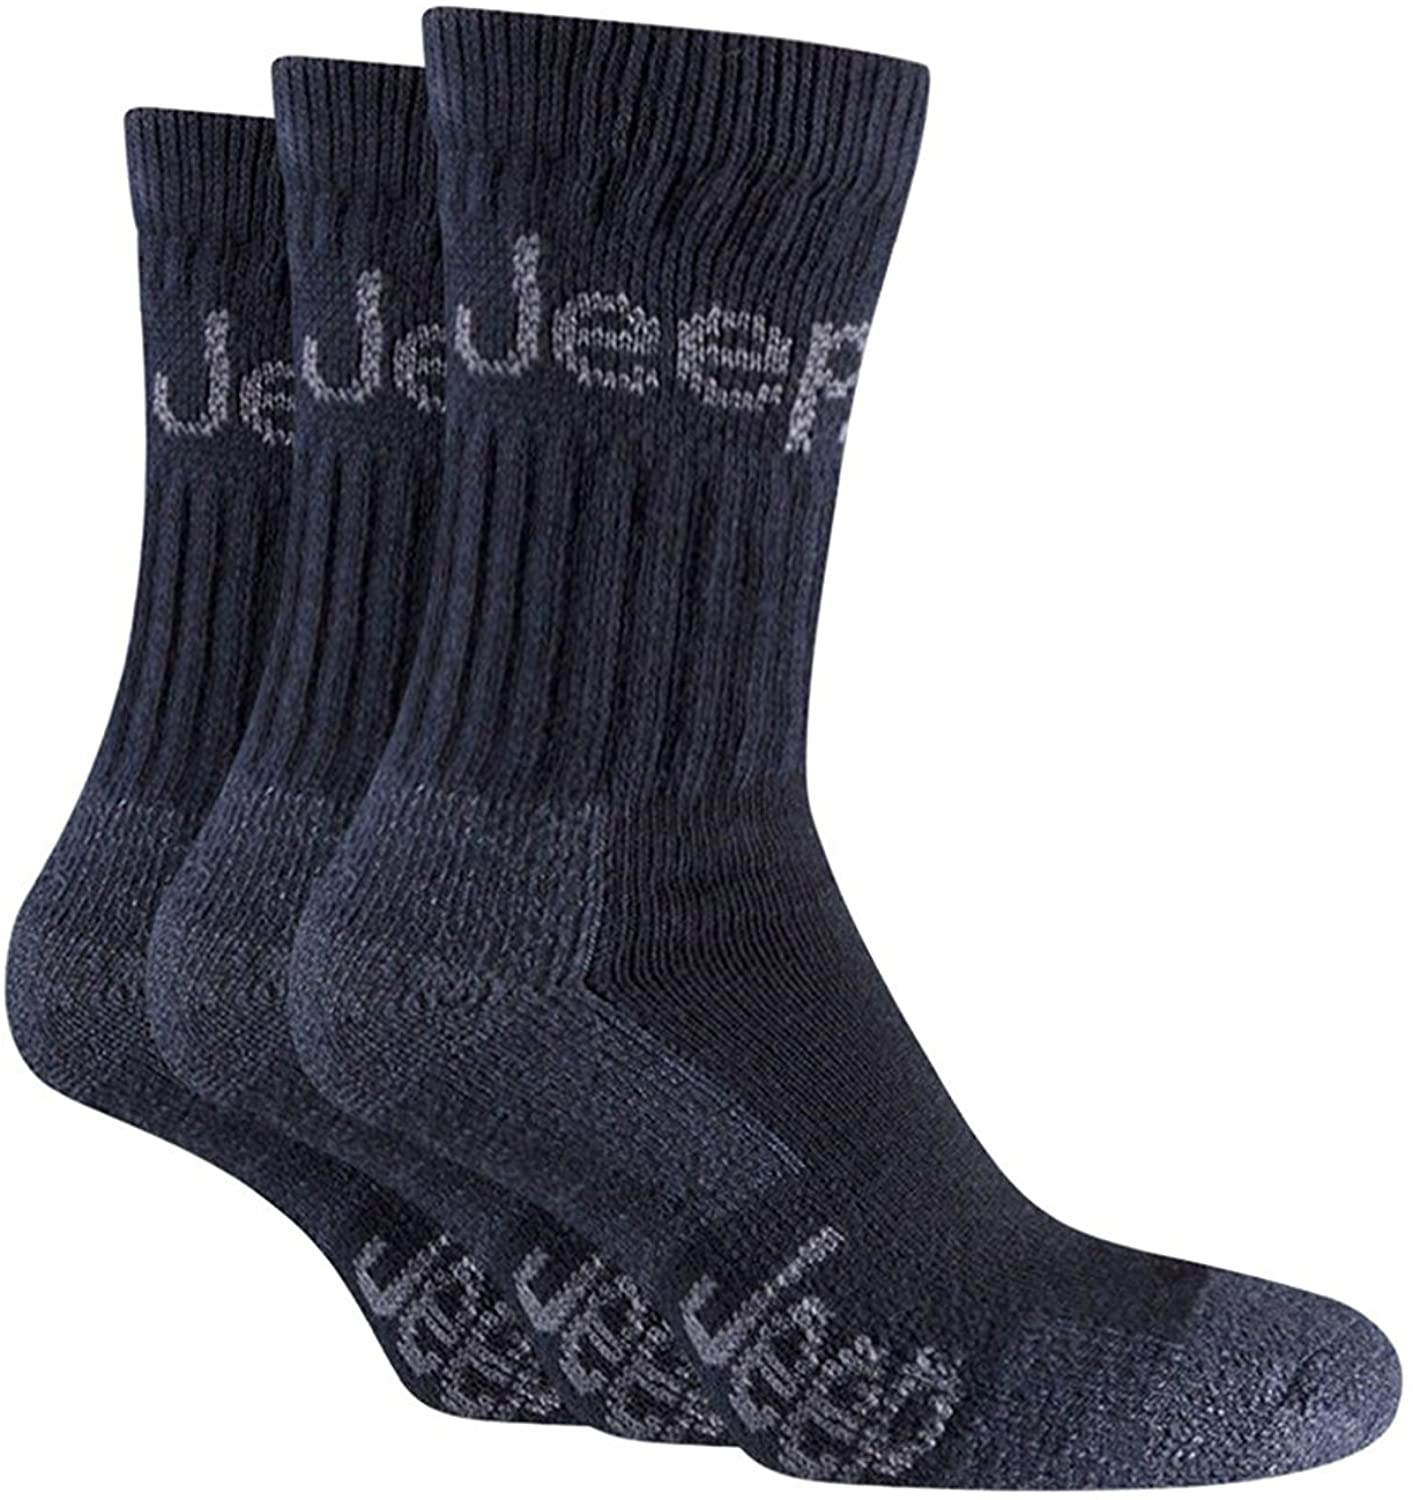 Jeep - 3 Pack Mens Thick Heavy Cushioned Padded Cotton Hiking Boot Crew Socks